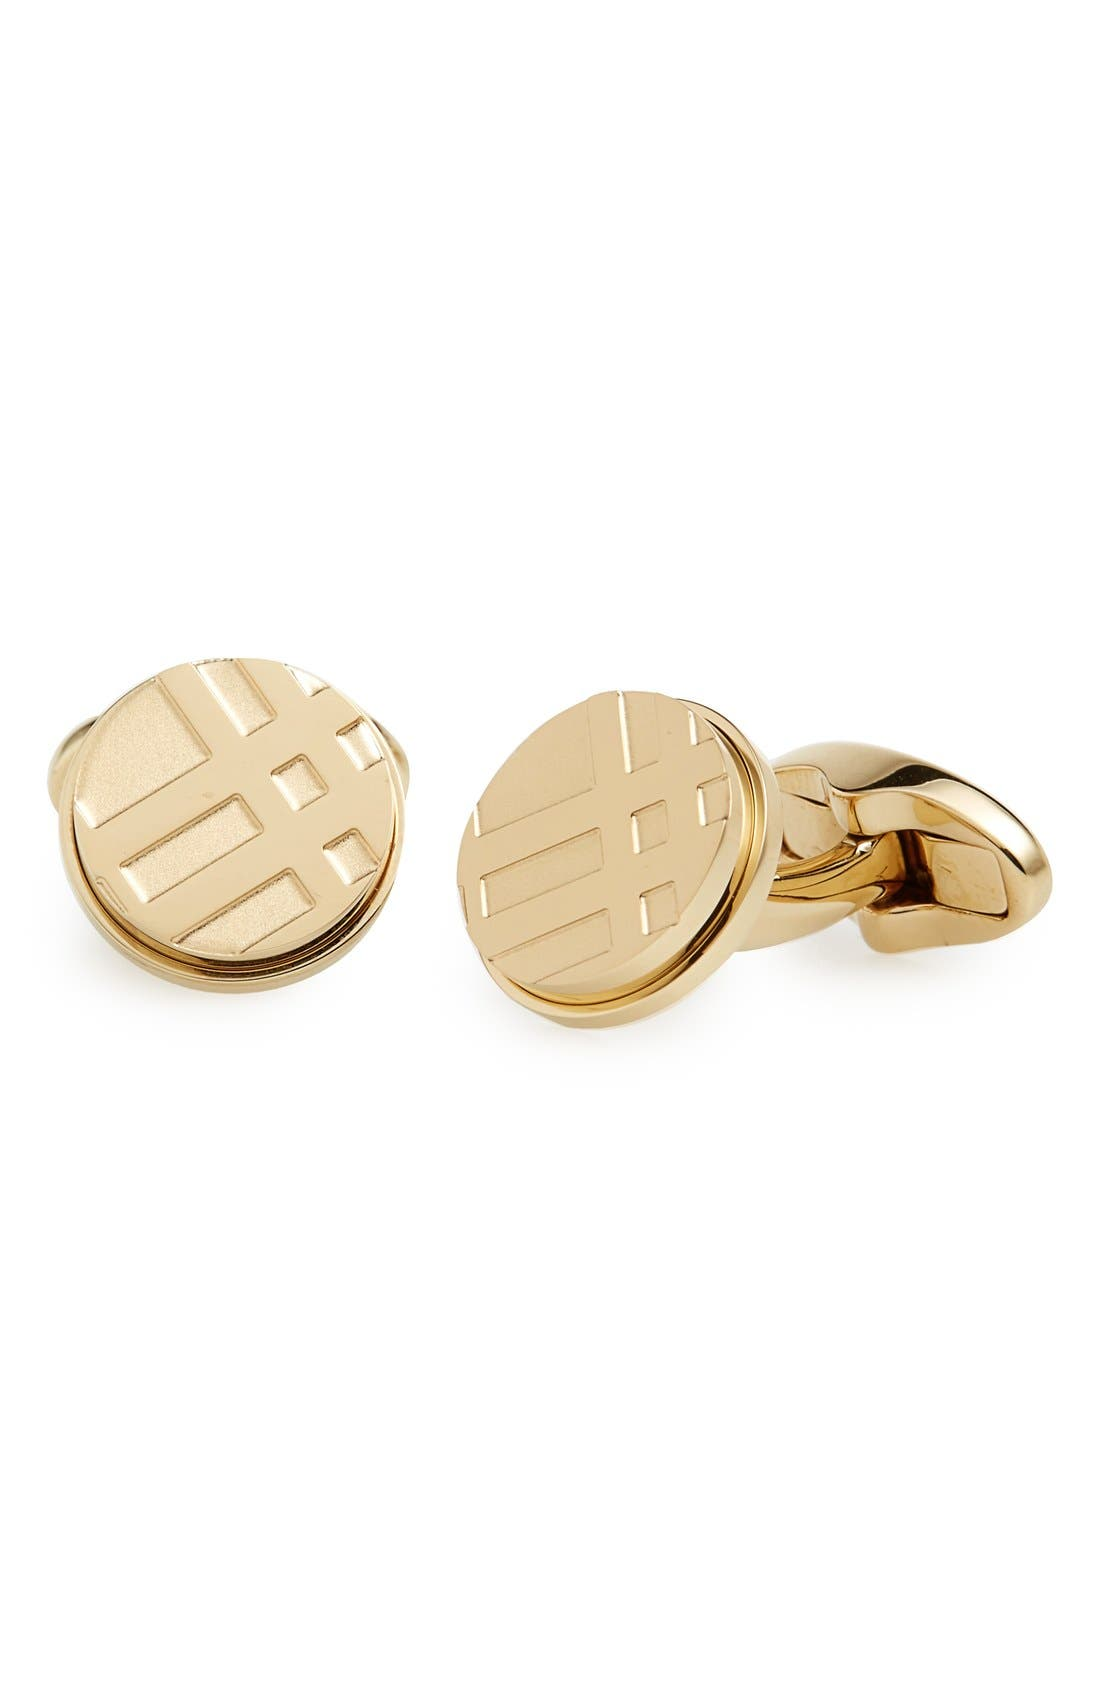 Burberry Round Cuff Links